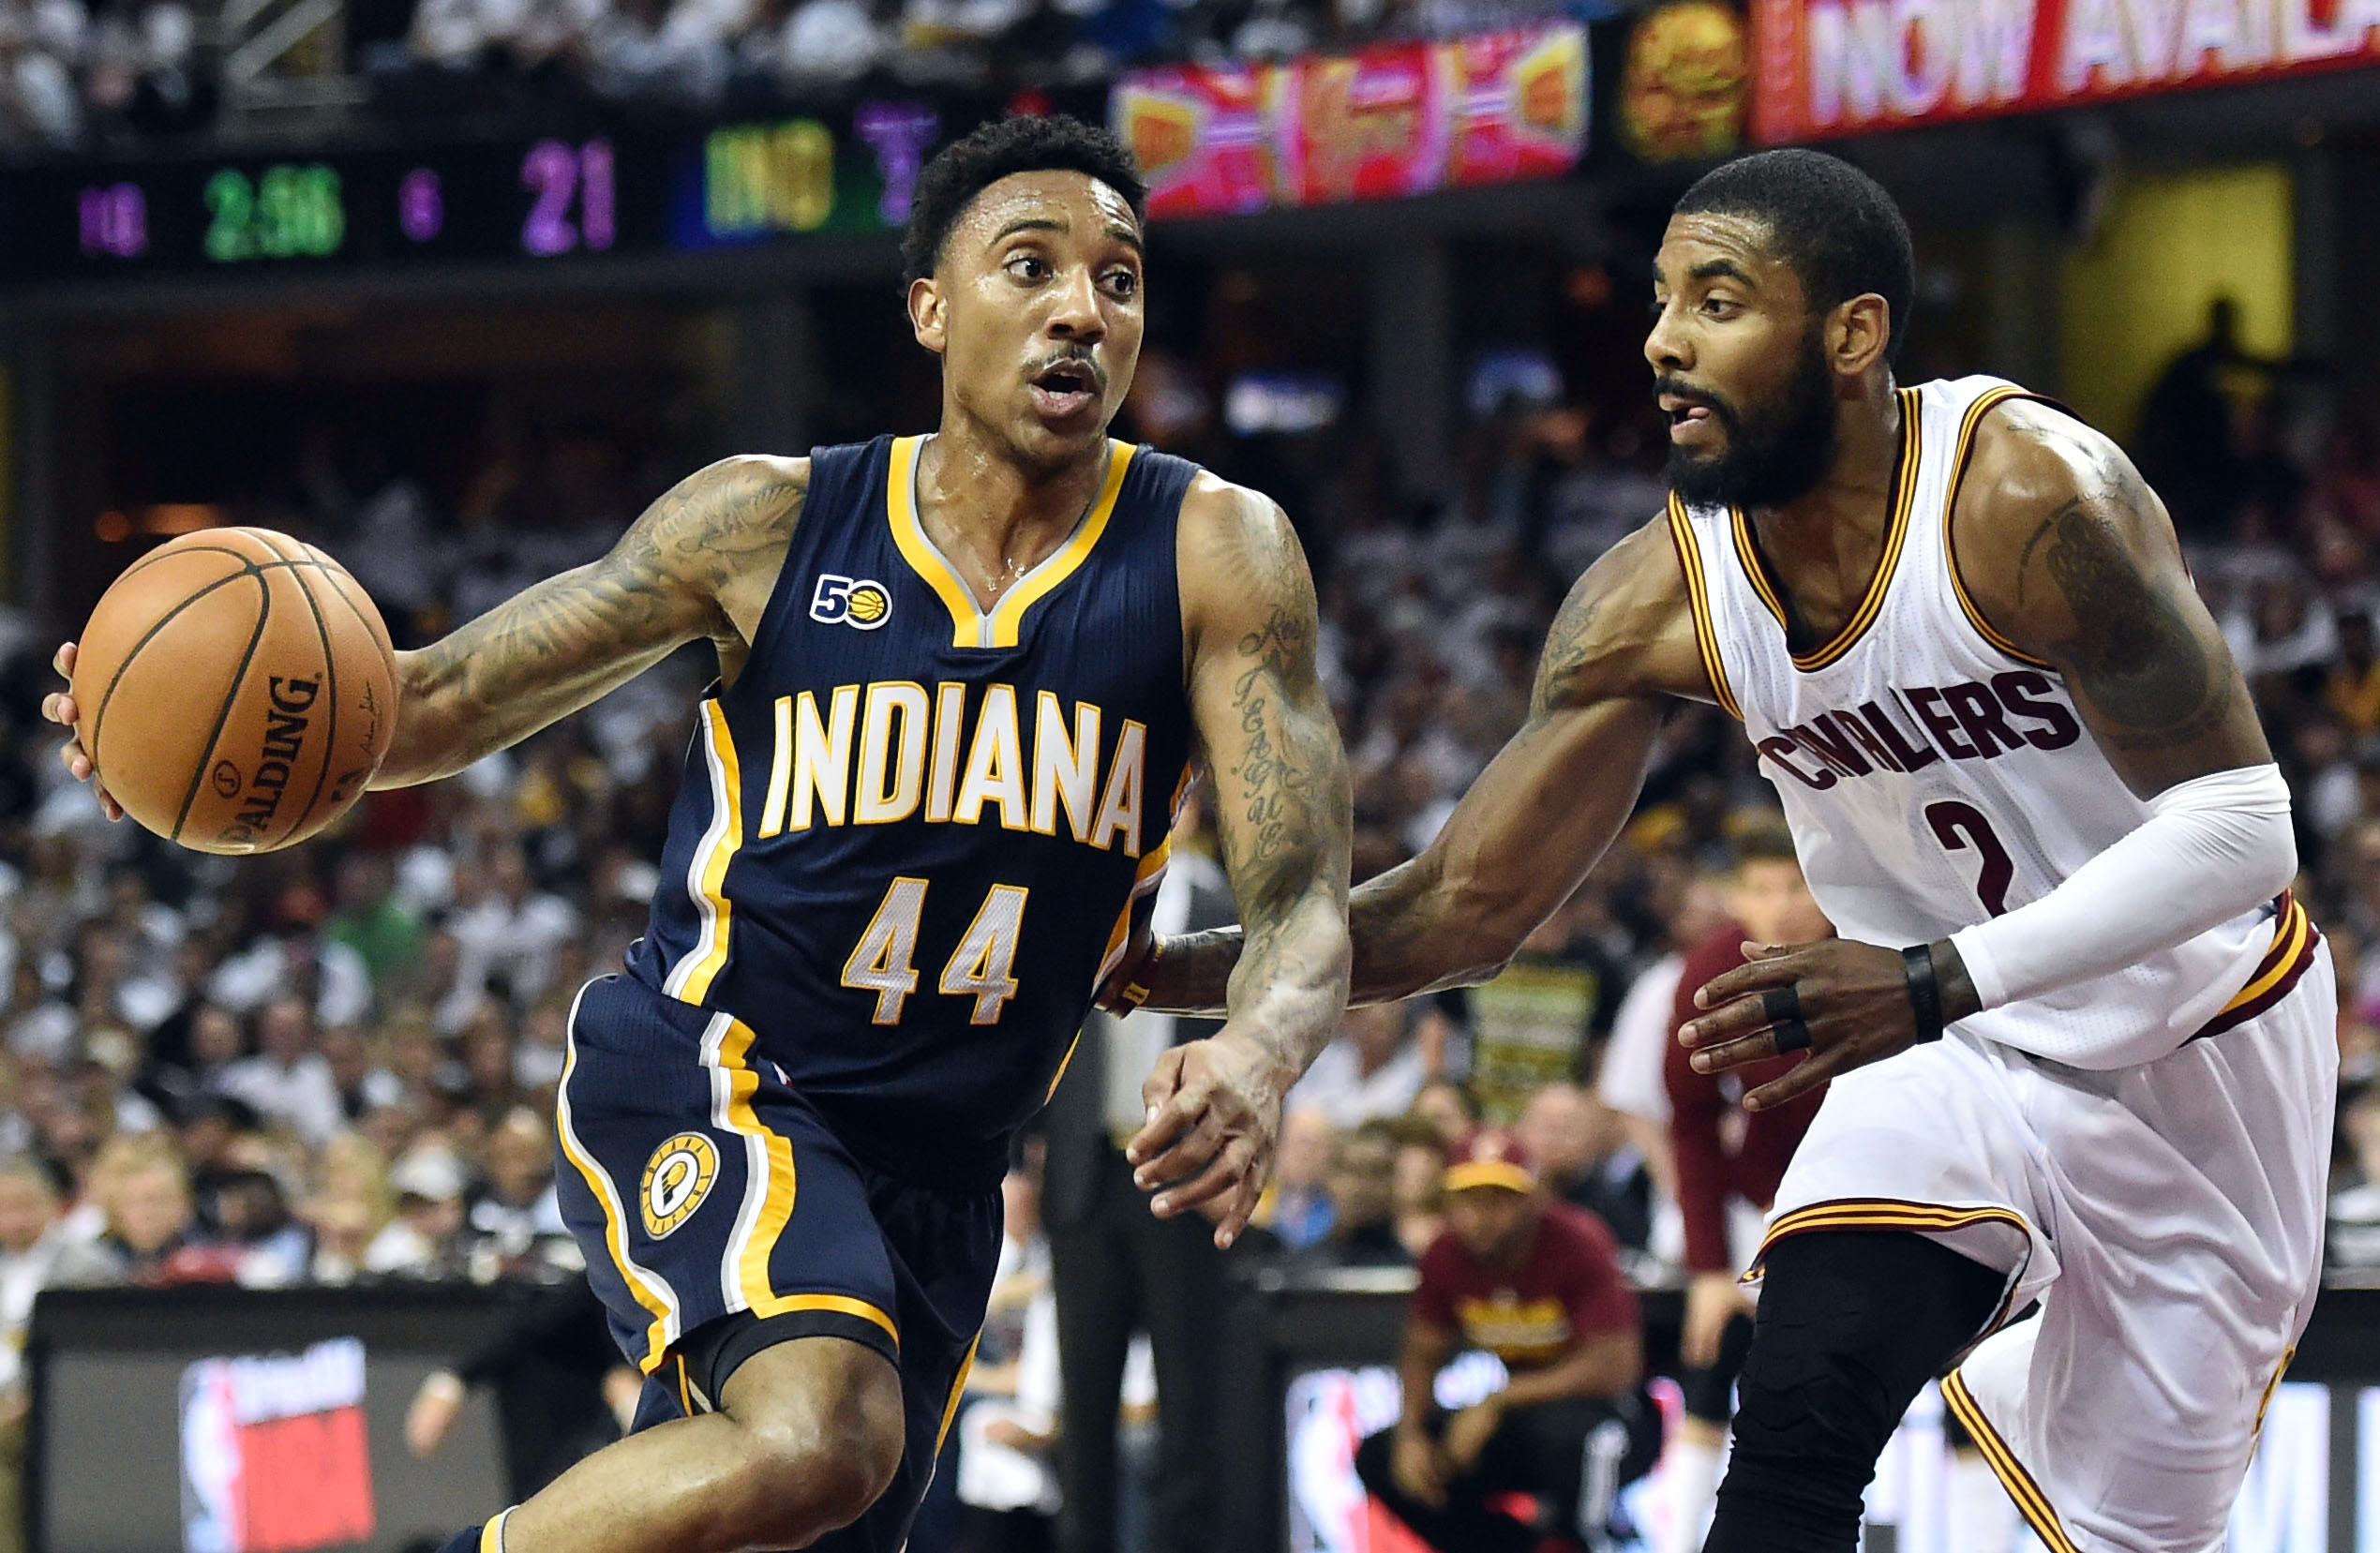 10017499-nba-playoffs-indiana-pacers-at-cleveland-cavaliers